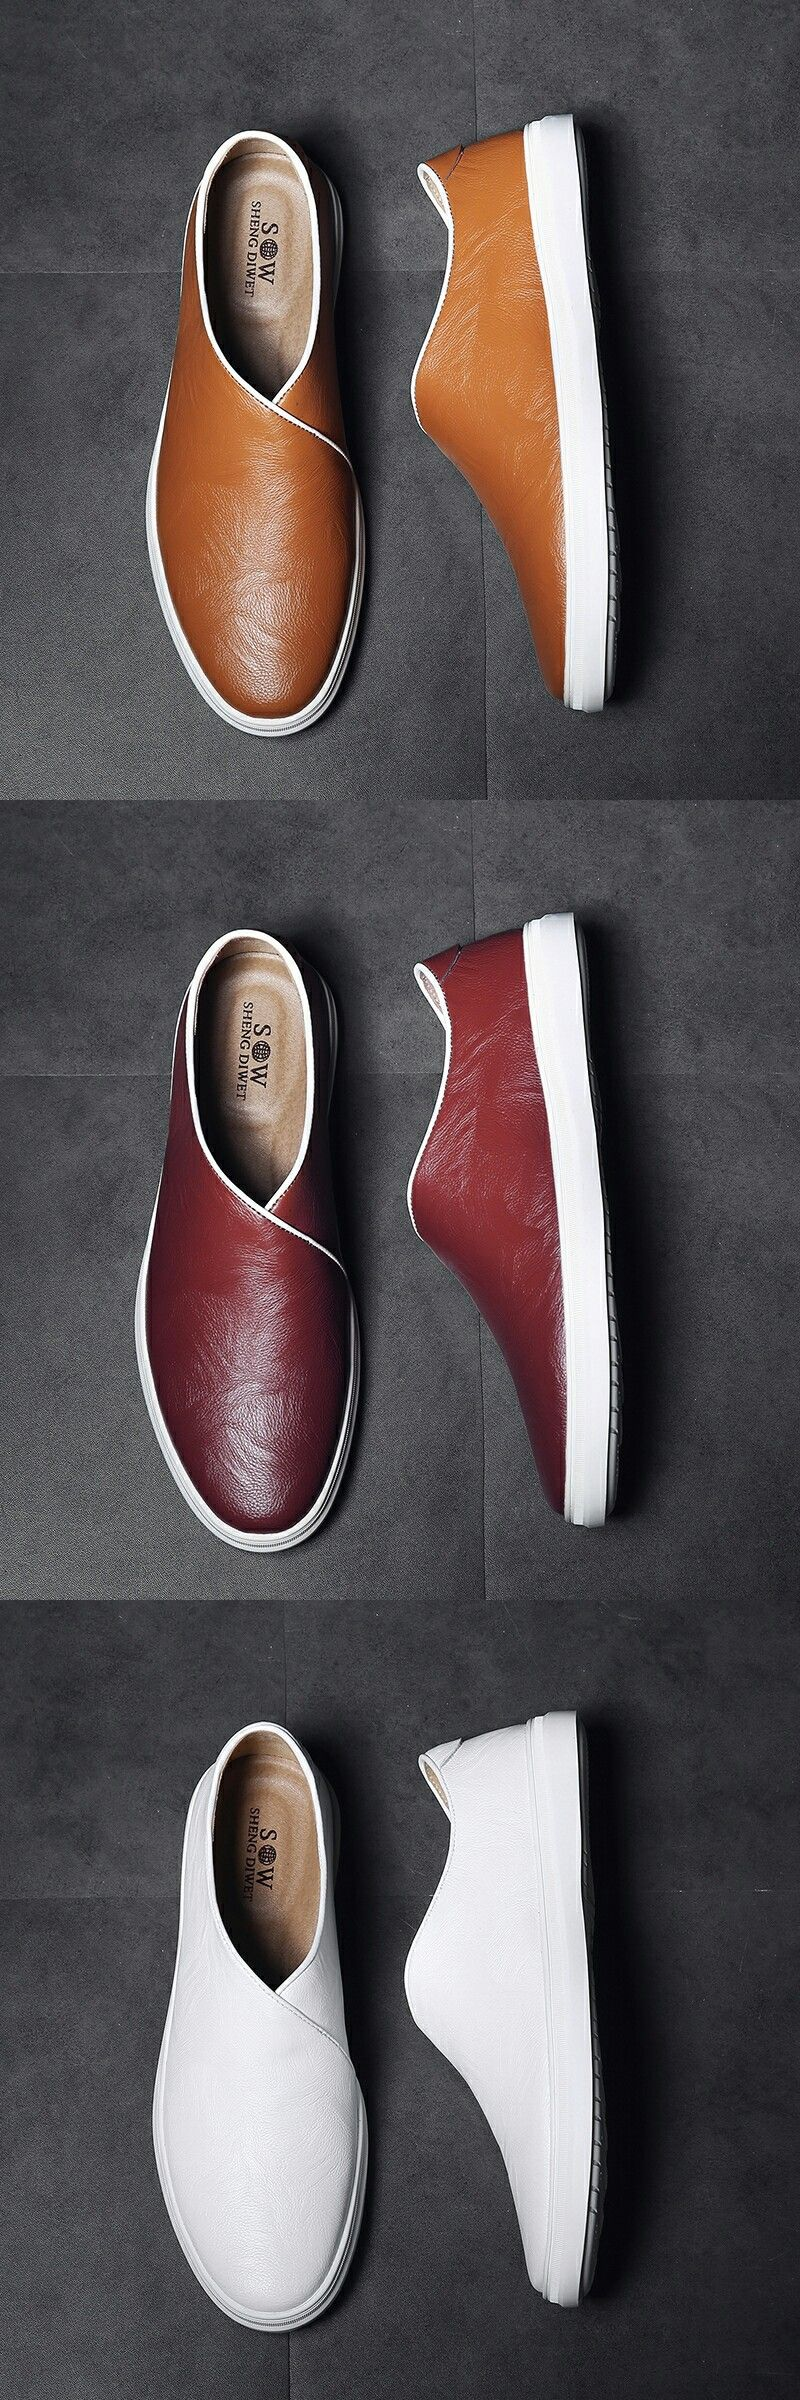 710ab53d5b79 US  29.8  Click to buy  Prelesty New Leather Shoes Men Casual Genuine Cow  Leather Loafers Slip On Formal Driving Soft Footwear